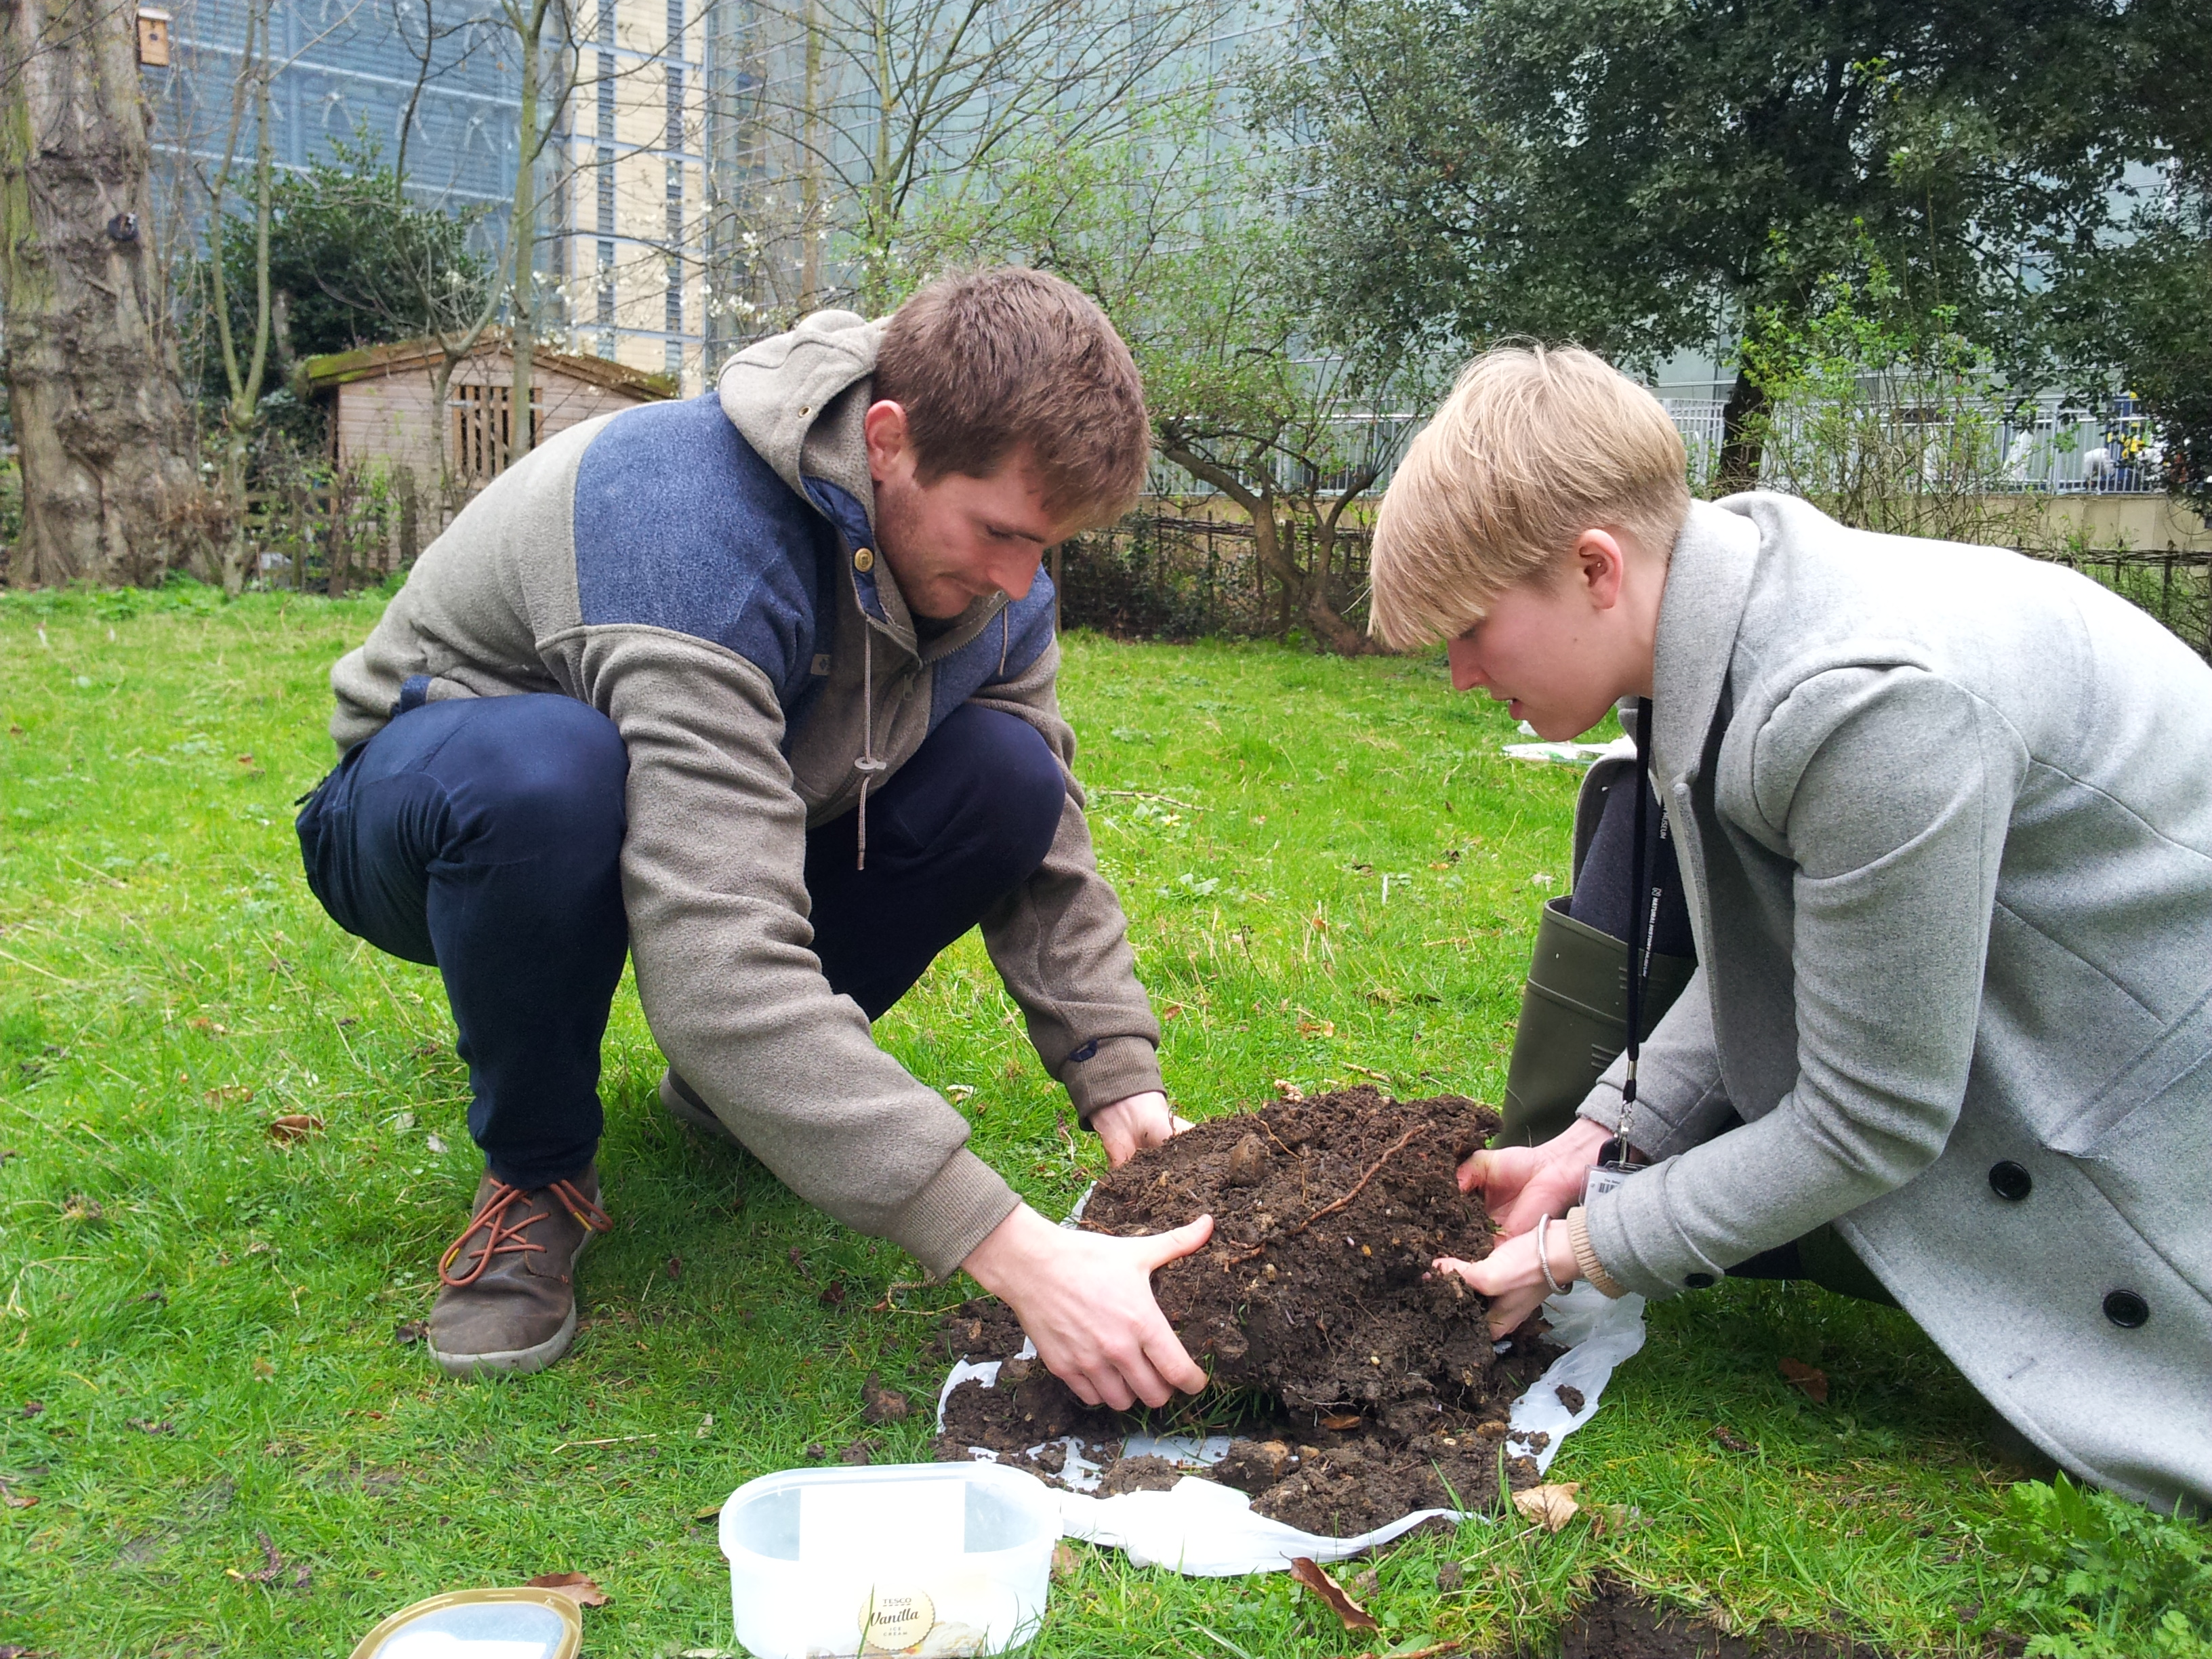 Vicki Shennan taking part in Earthworm Watch in The Natural History Museum's Wildlife Garden